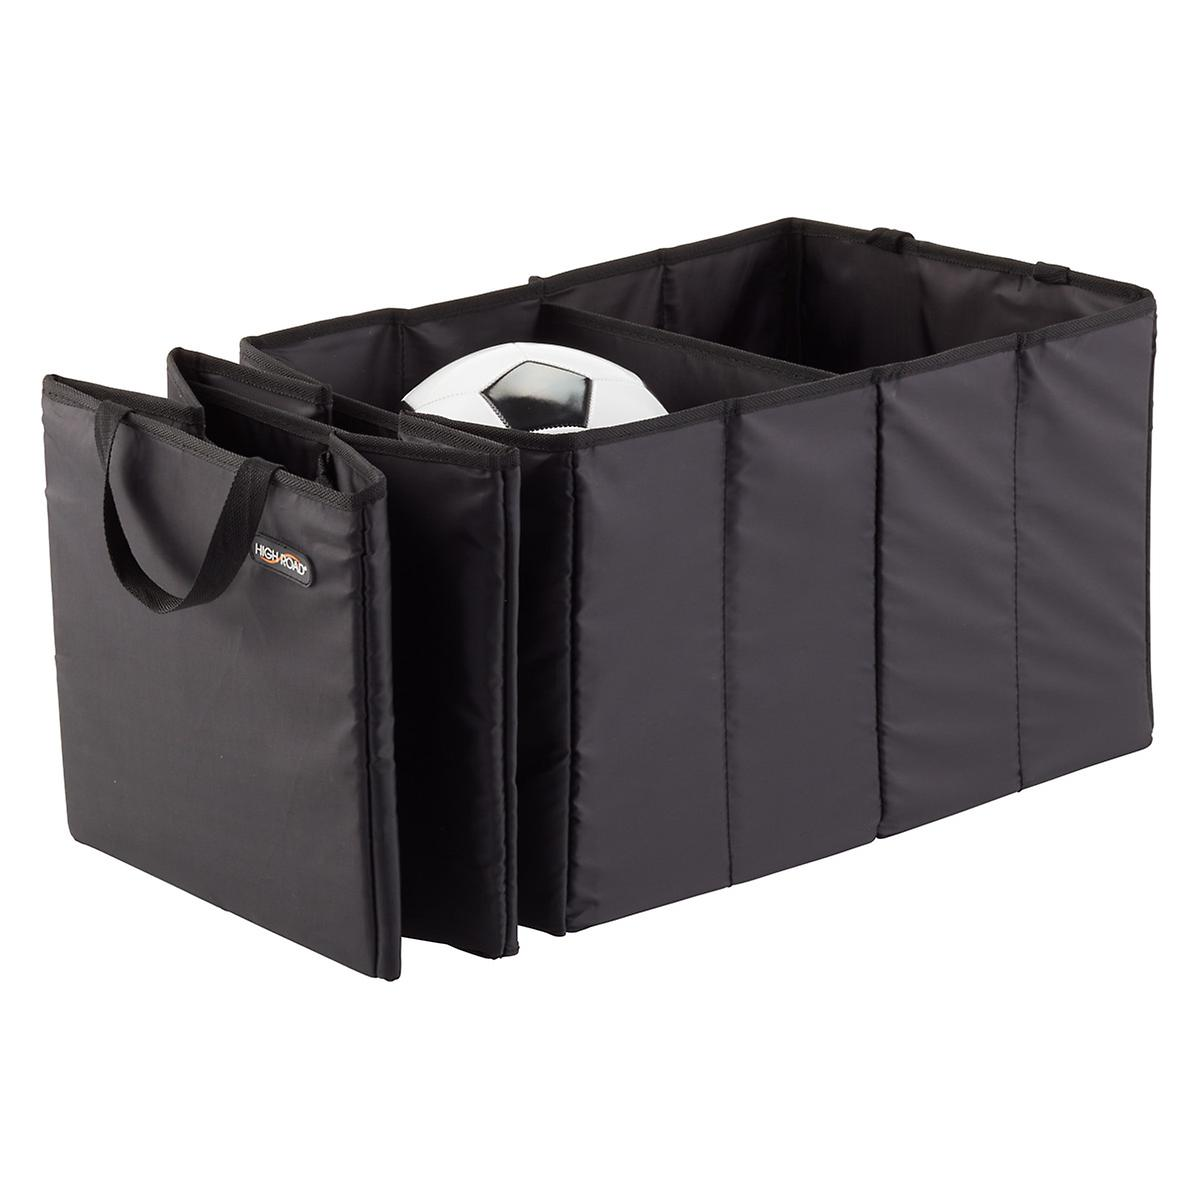 Accordion Cargo Organizer The Container Store